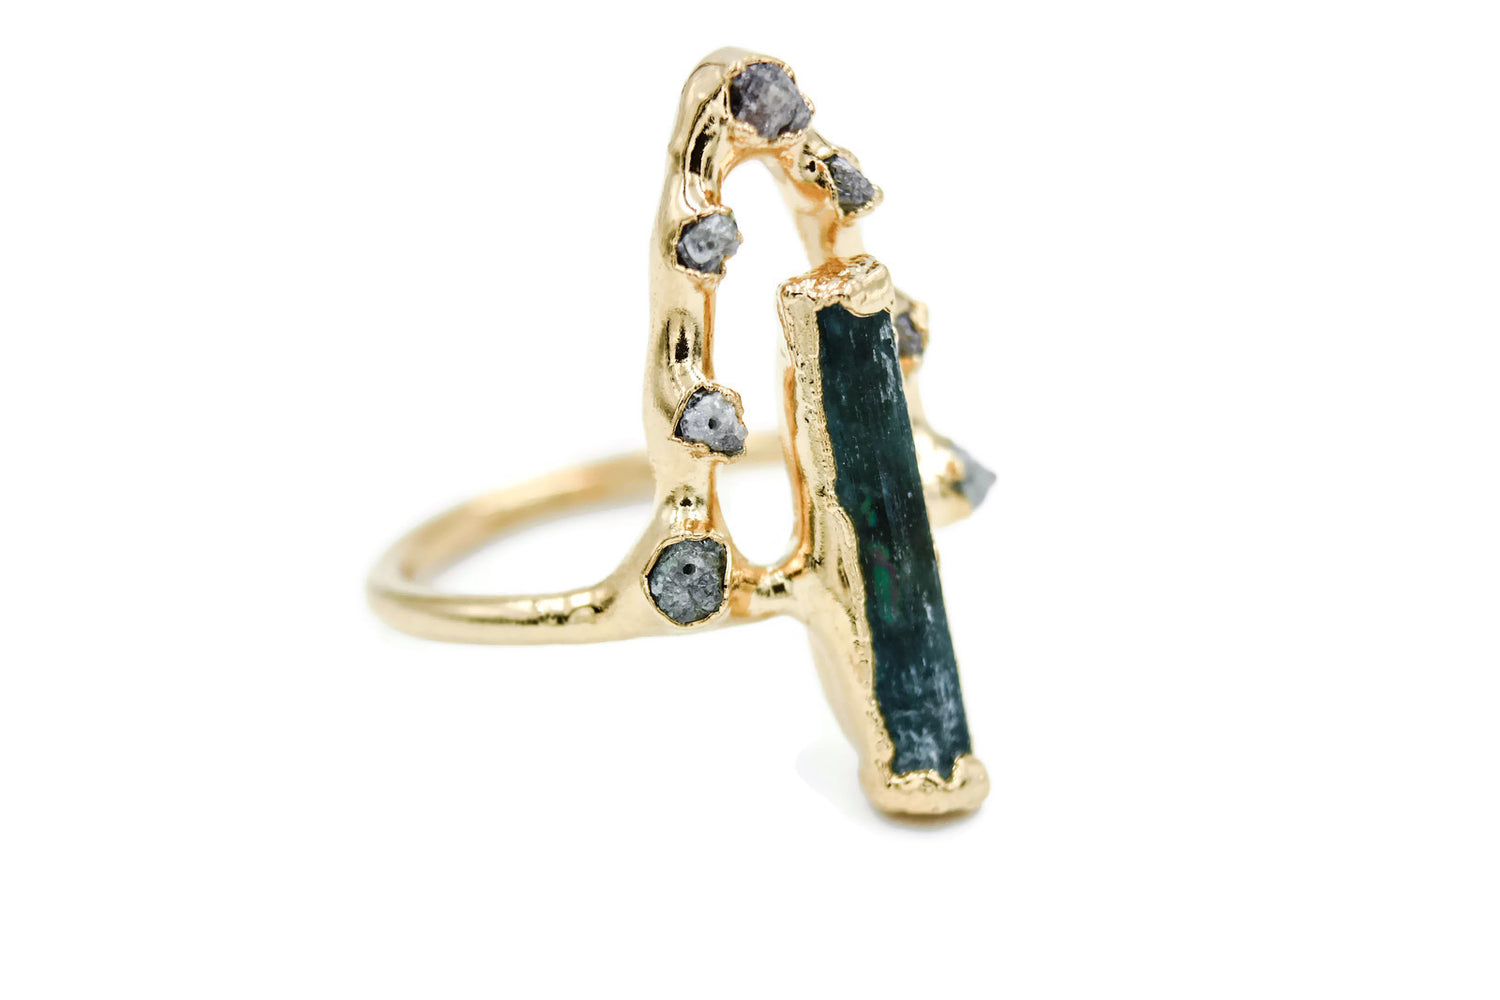 Aqumarine, Diamonds, Yellow Gold, Electroformed, Solitaire